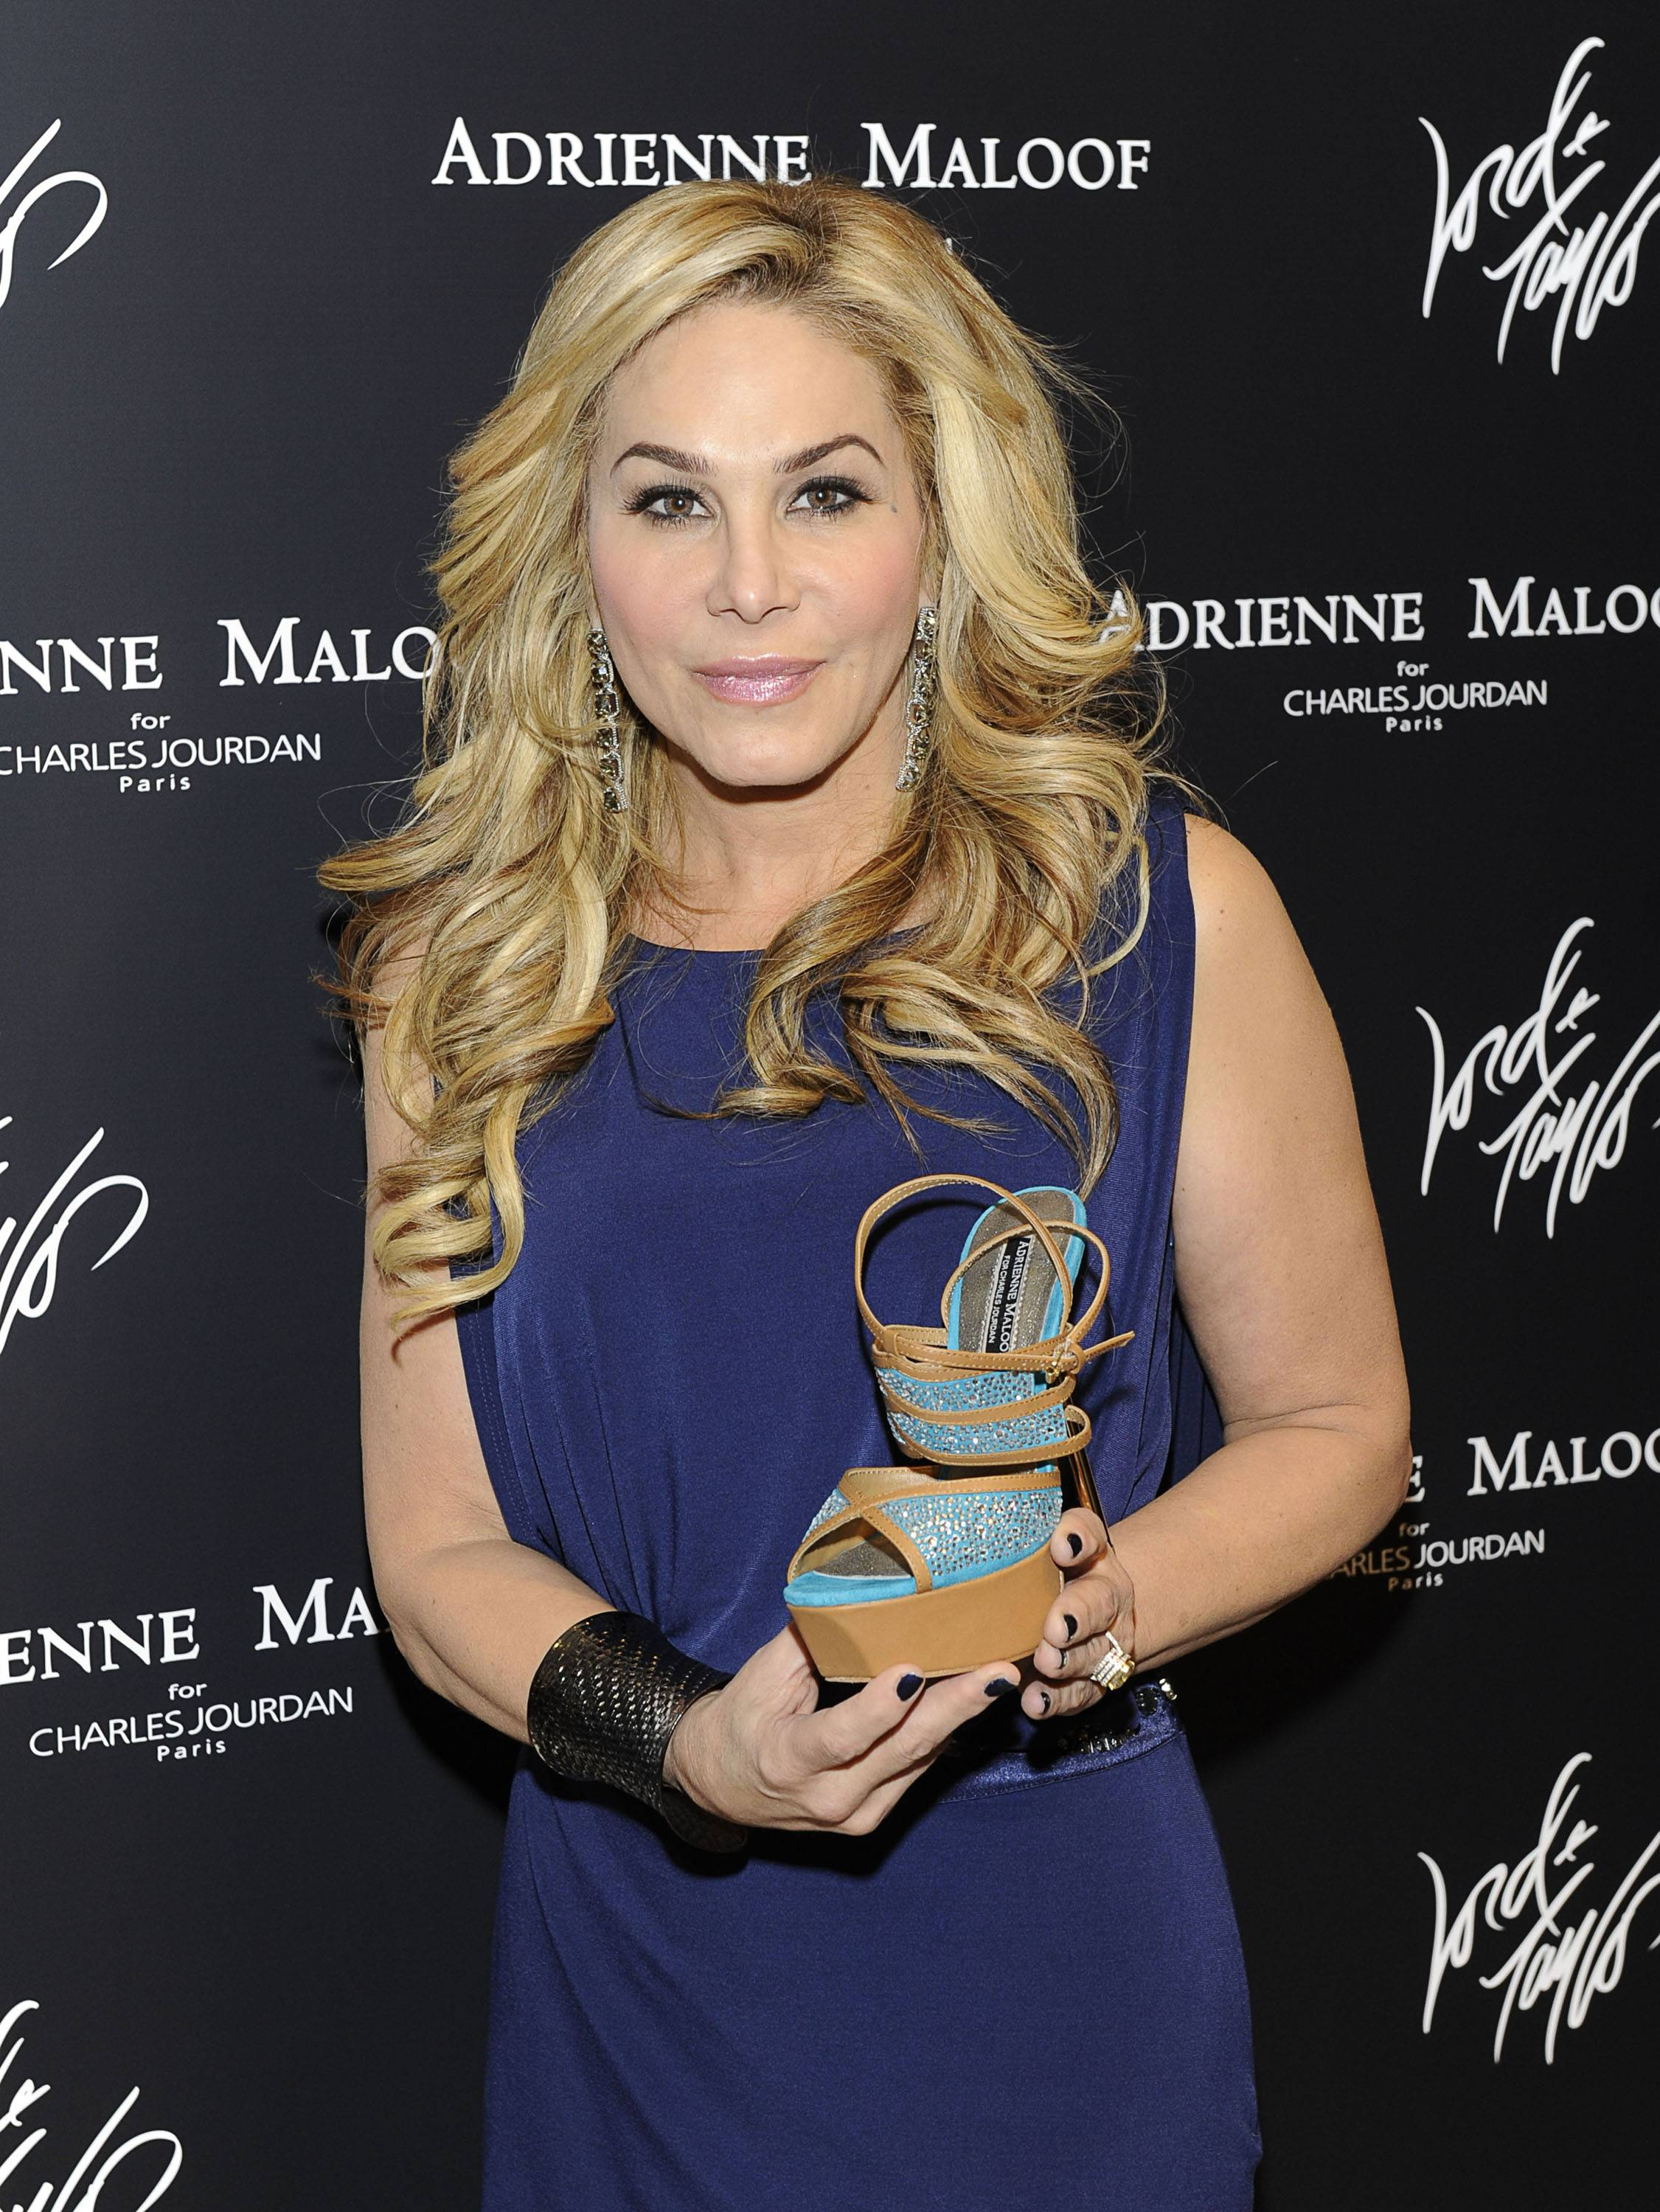 Haute Living Exclusive Q&A with Adrienne Maloof